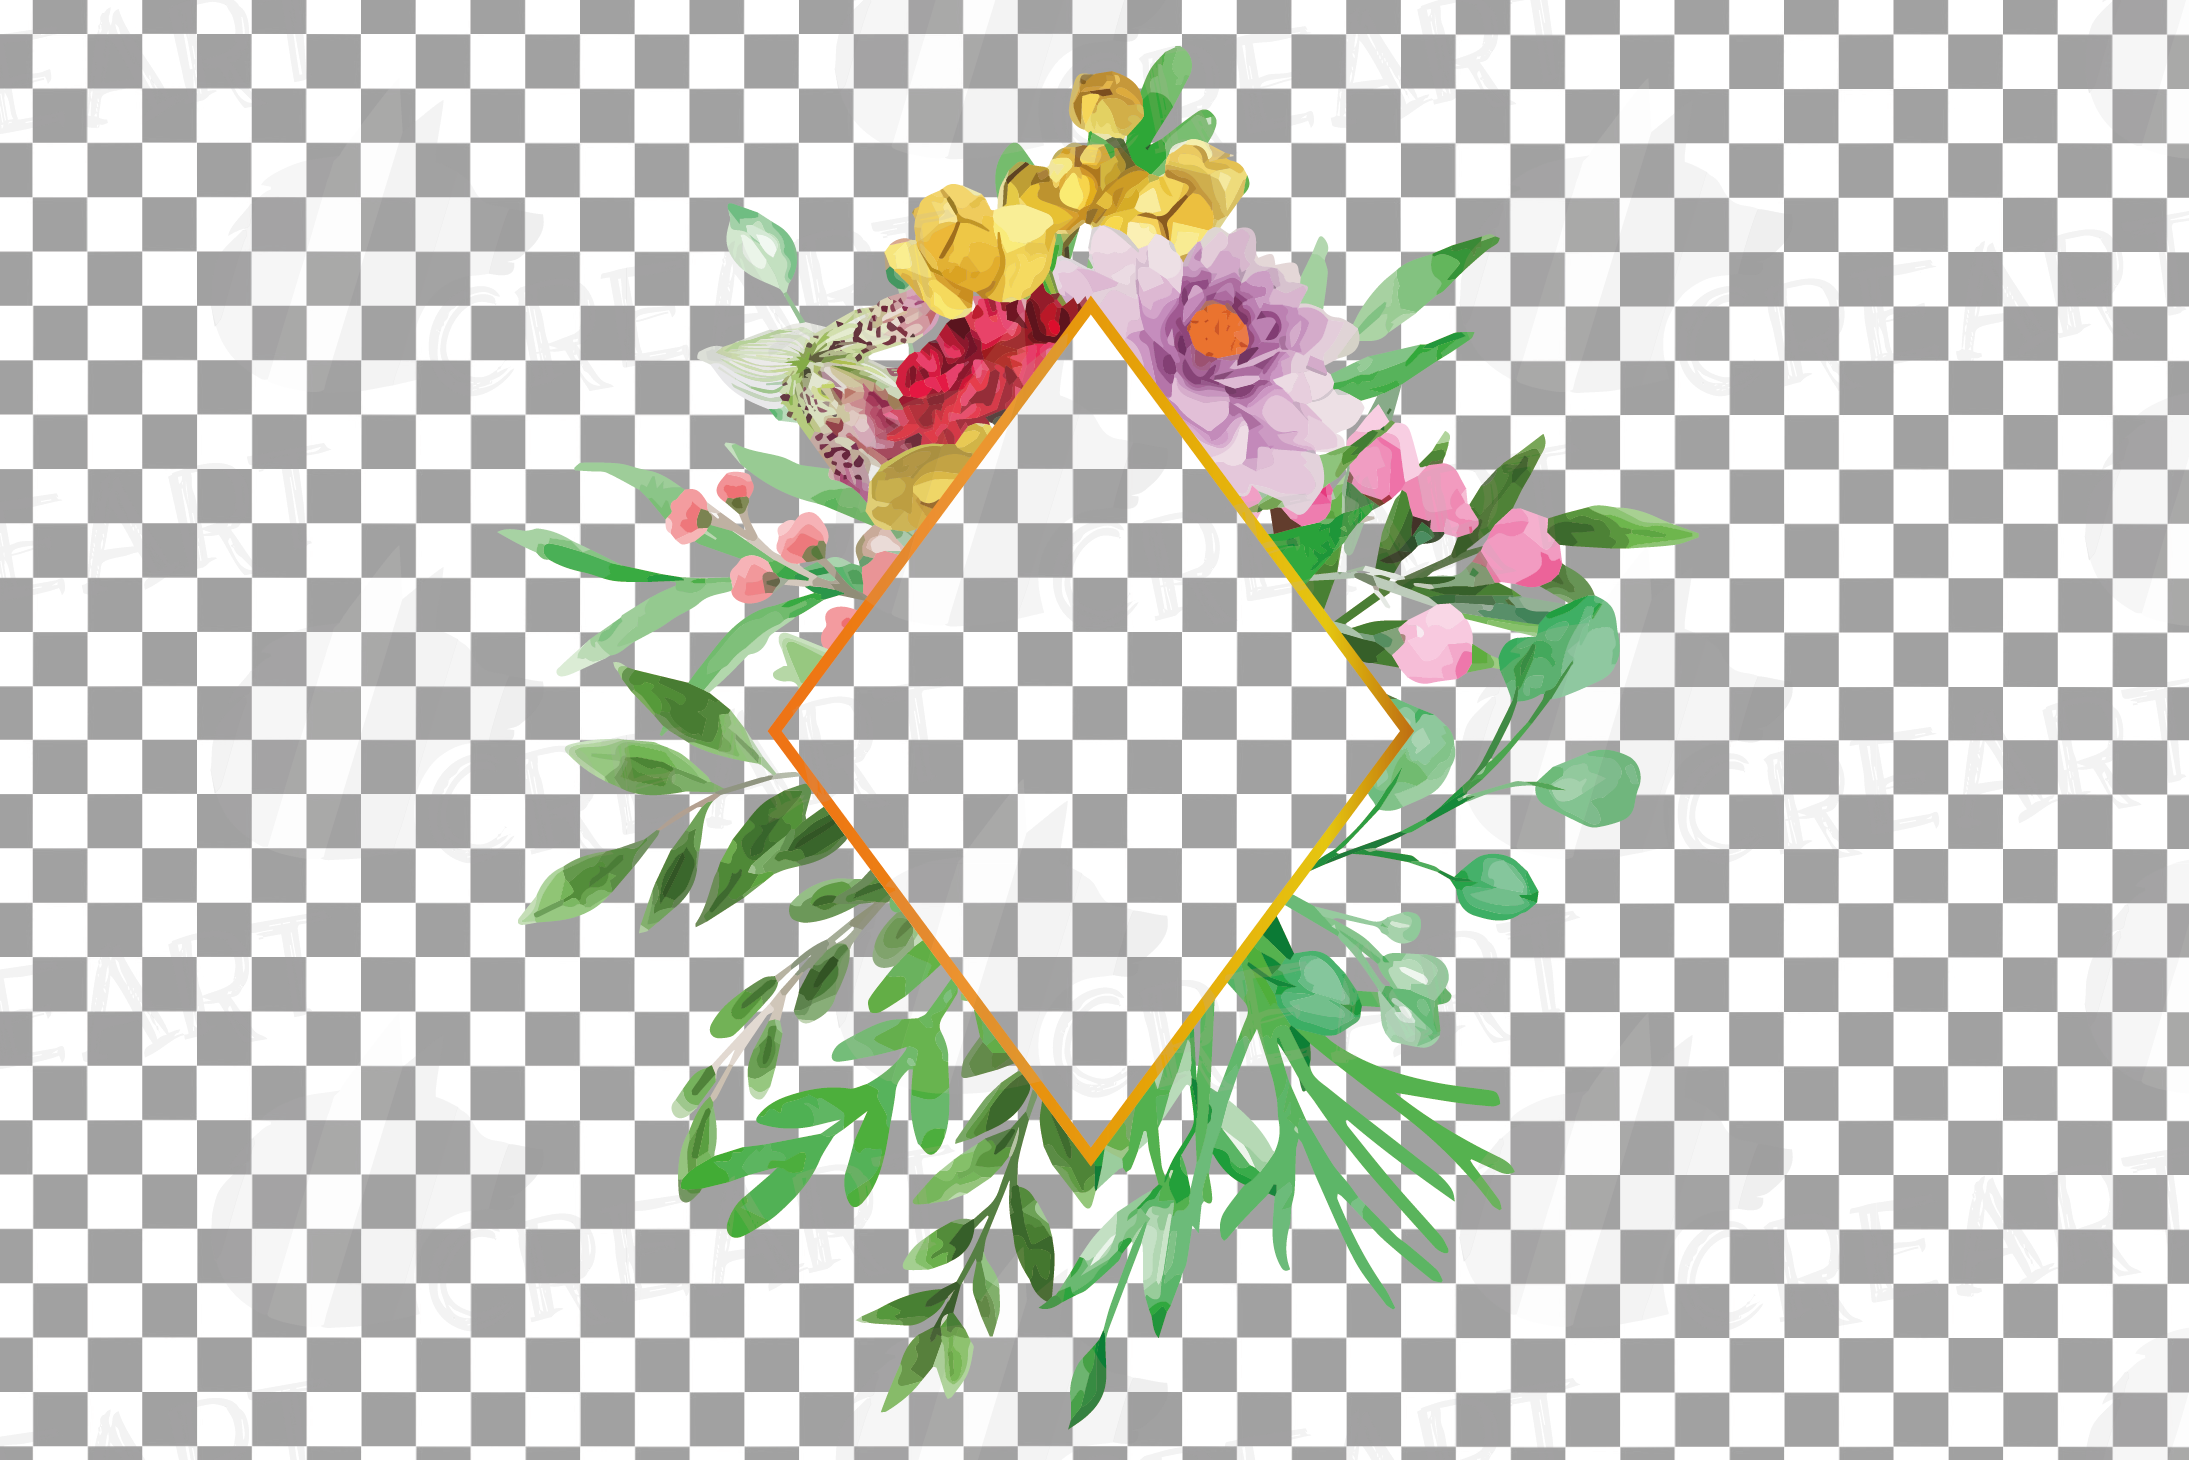 Watercolor floral floral frames and borders clip art pack example image 22